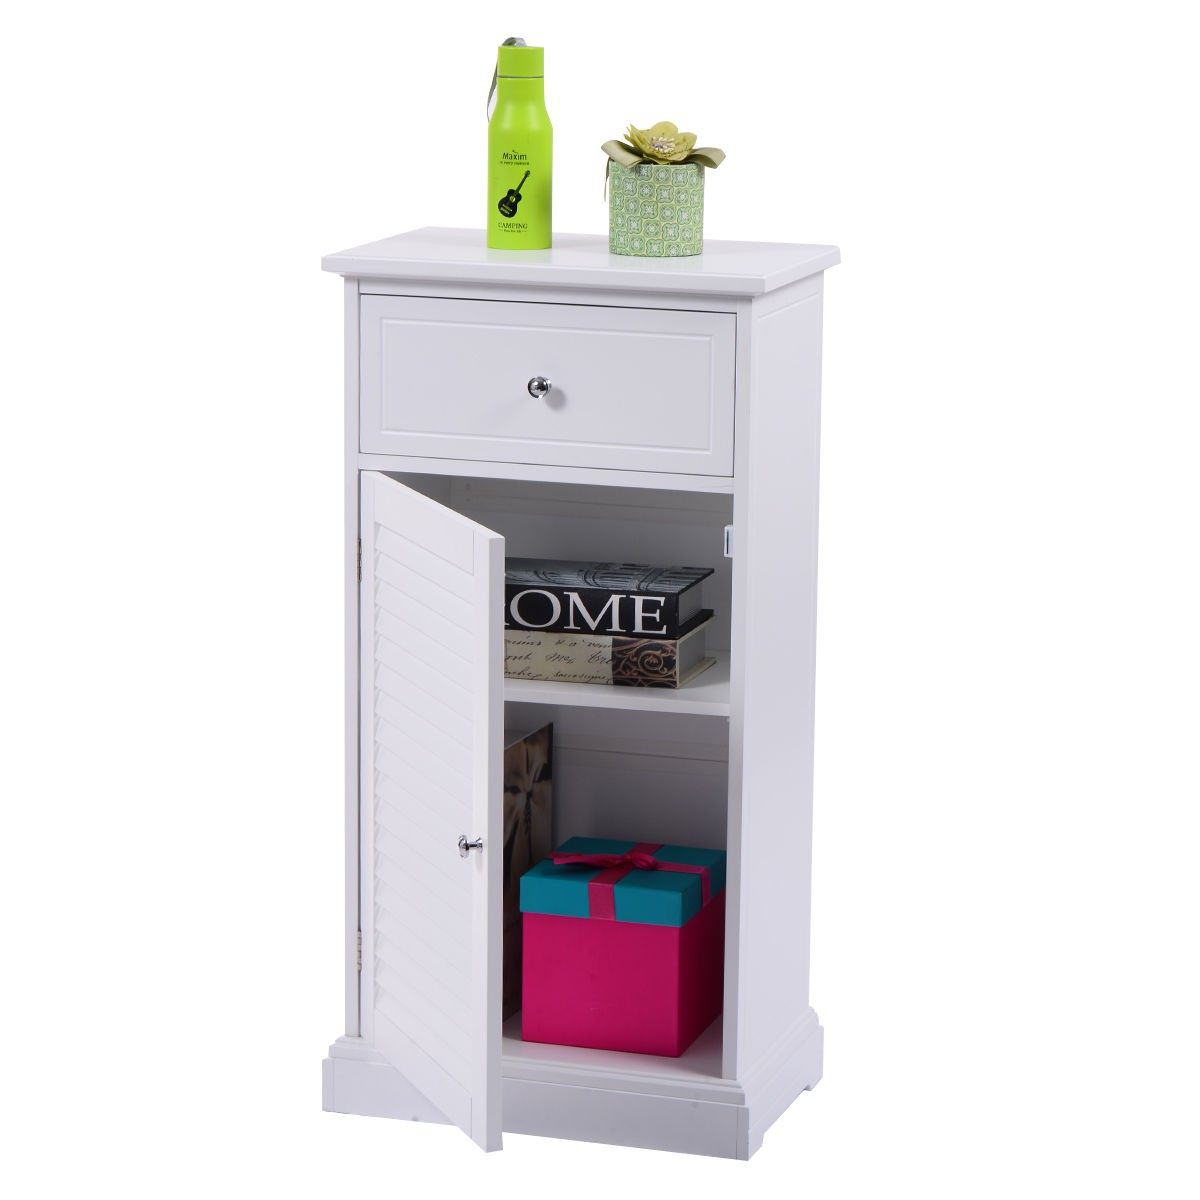 Storage floor cabinet wall shutter door bathroom organizer for Bathroom storage cabinets floor